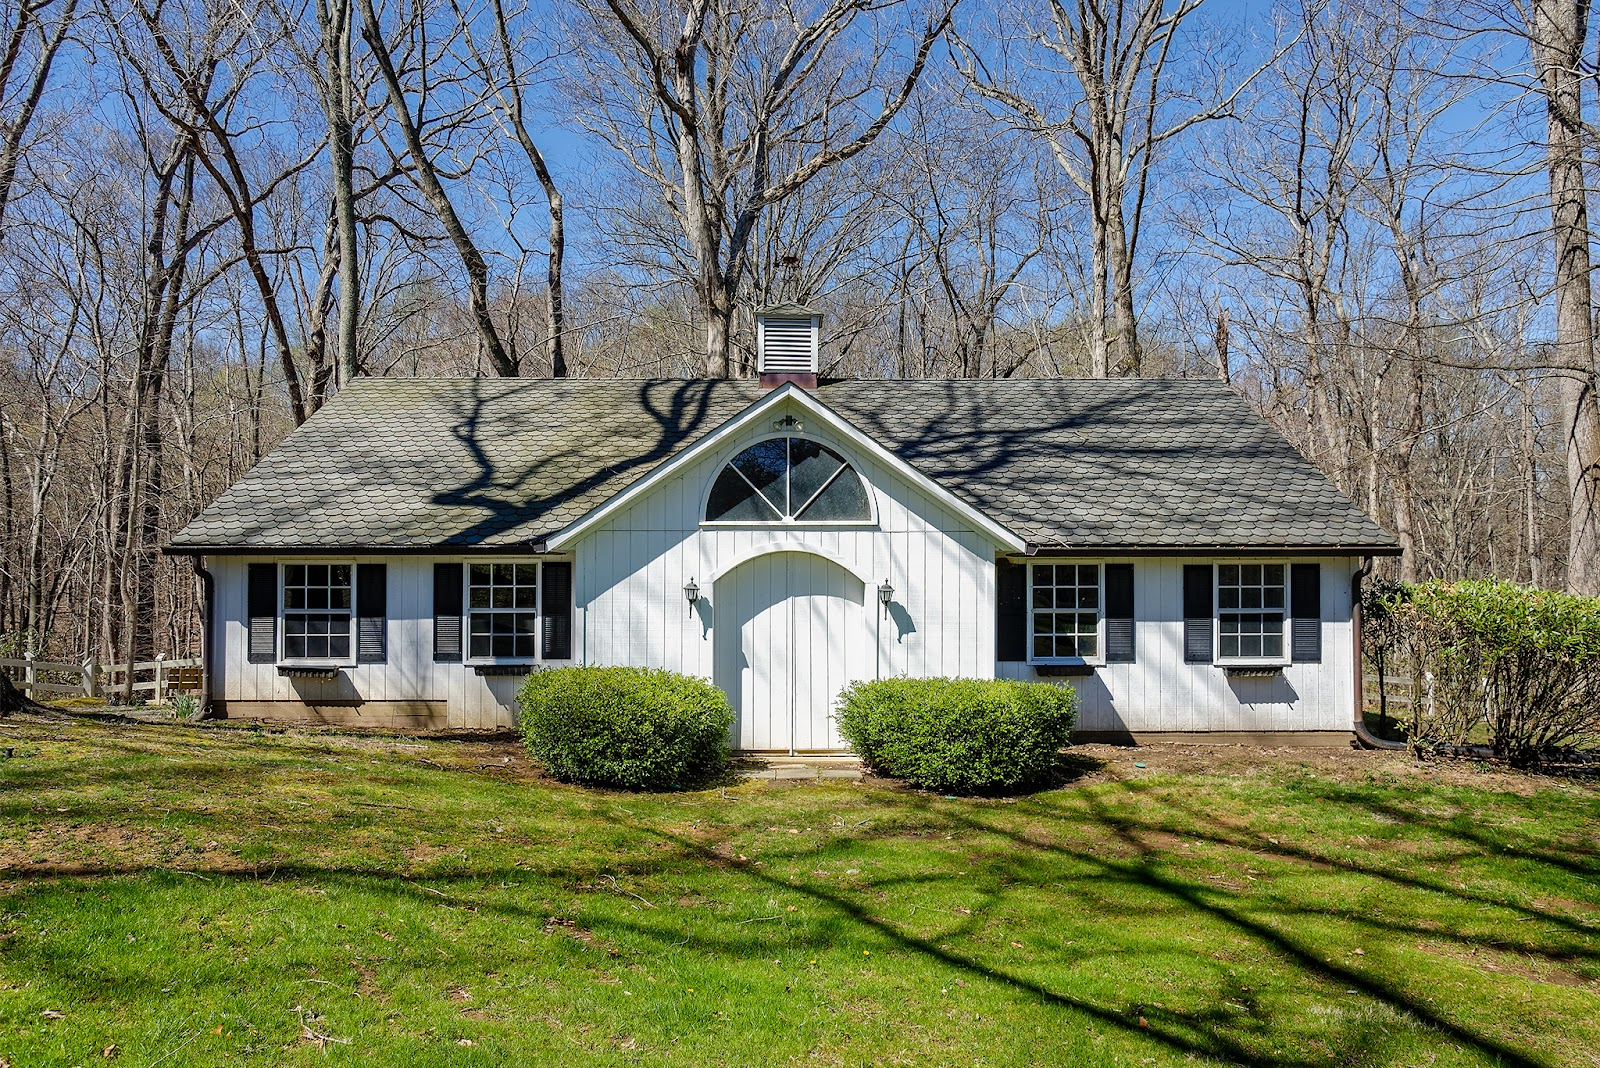 100 INTERPROMONTORY RD, GREAT FALLS, VA 22066